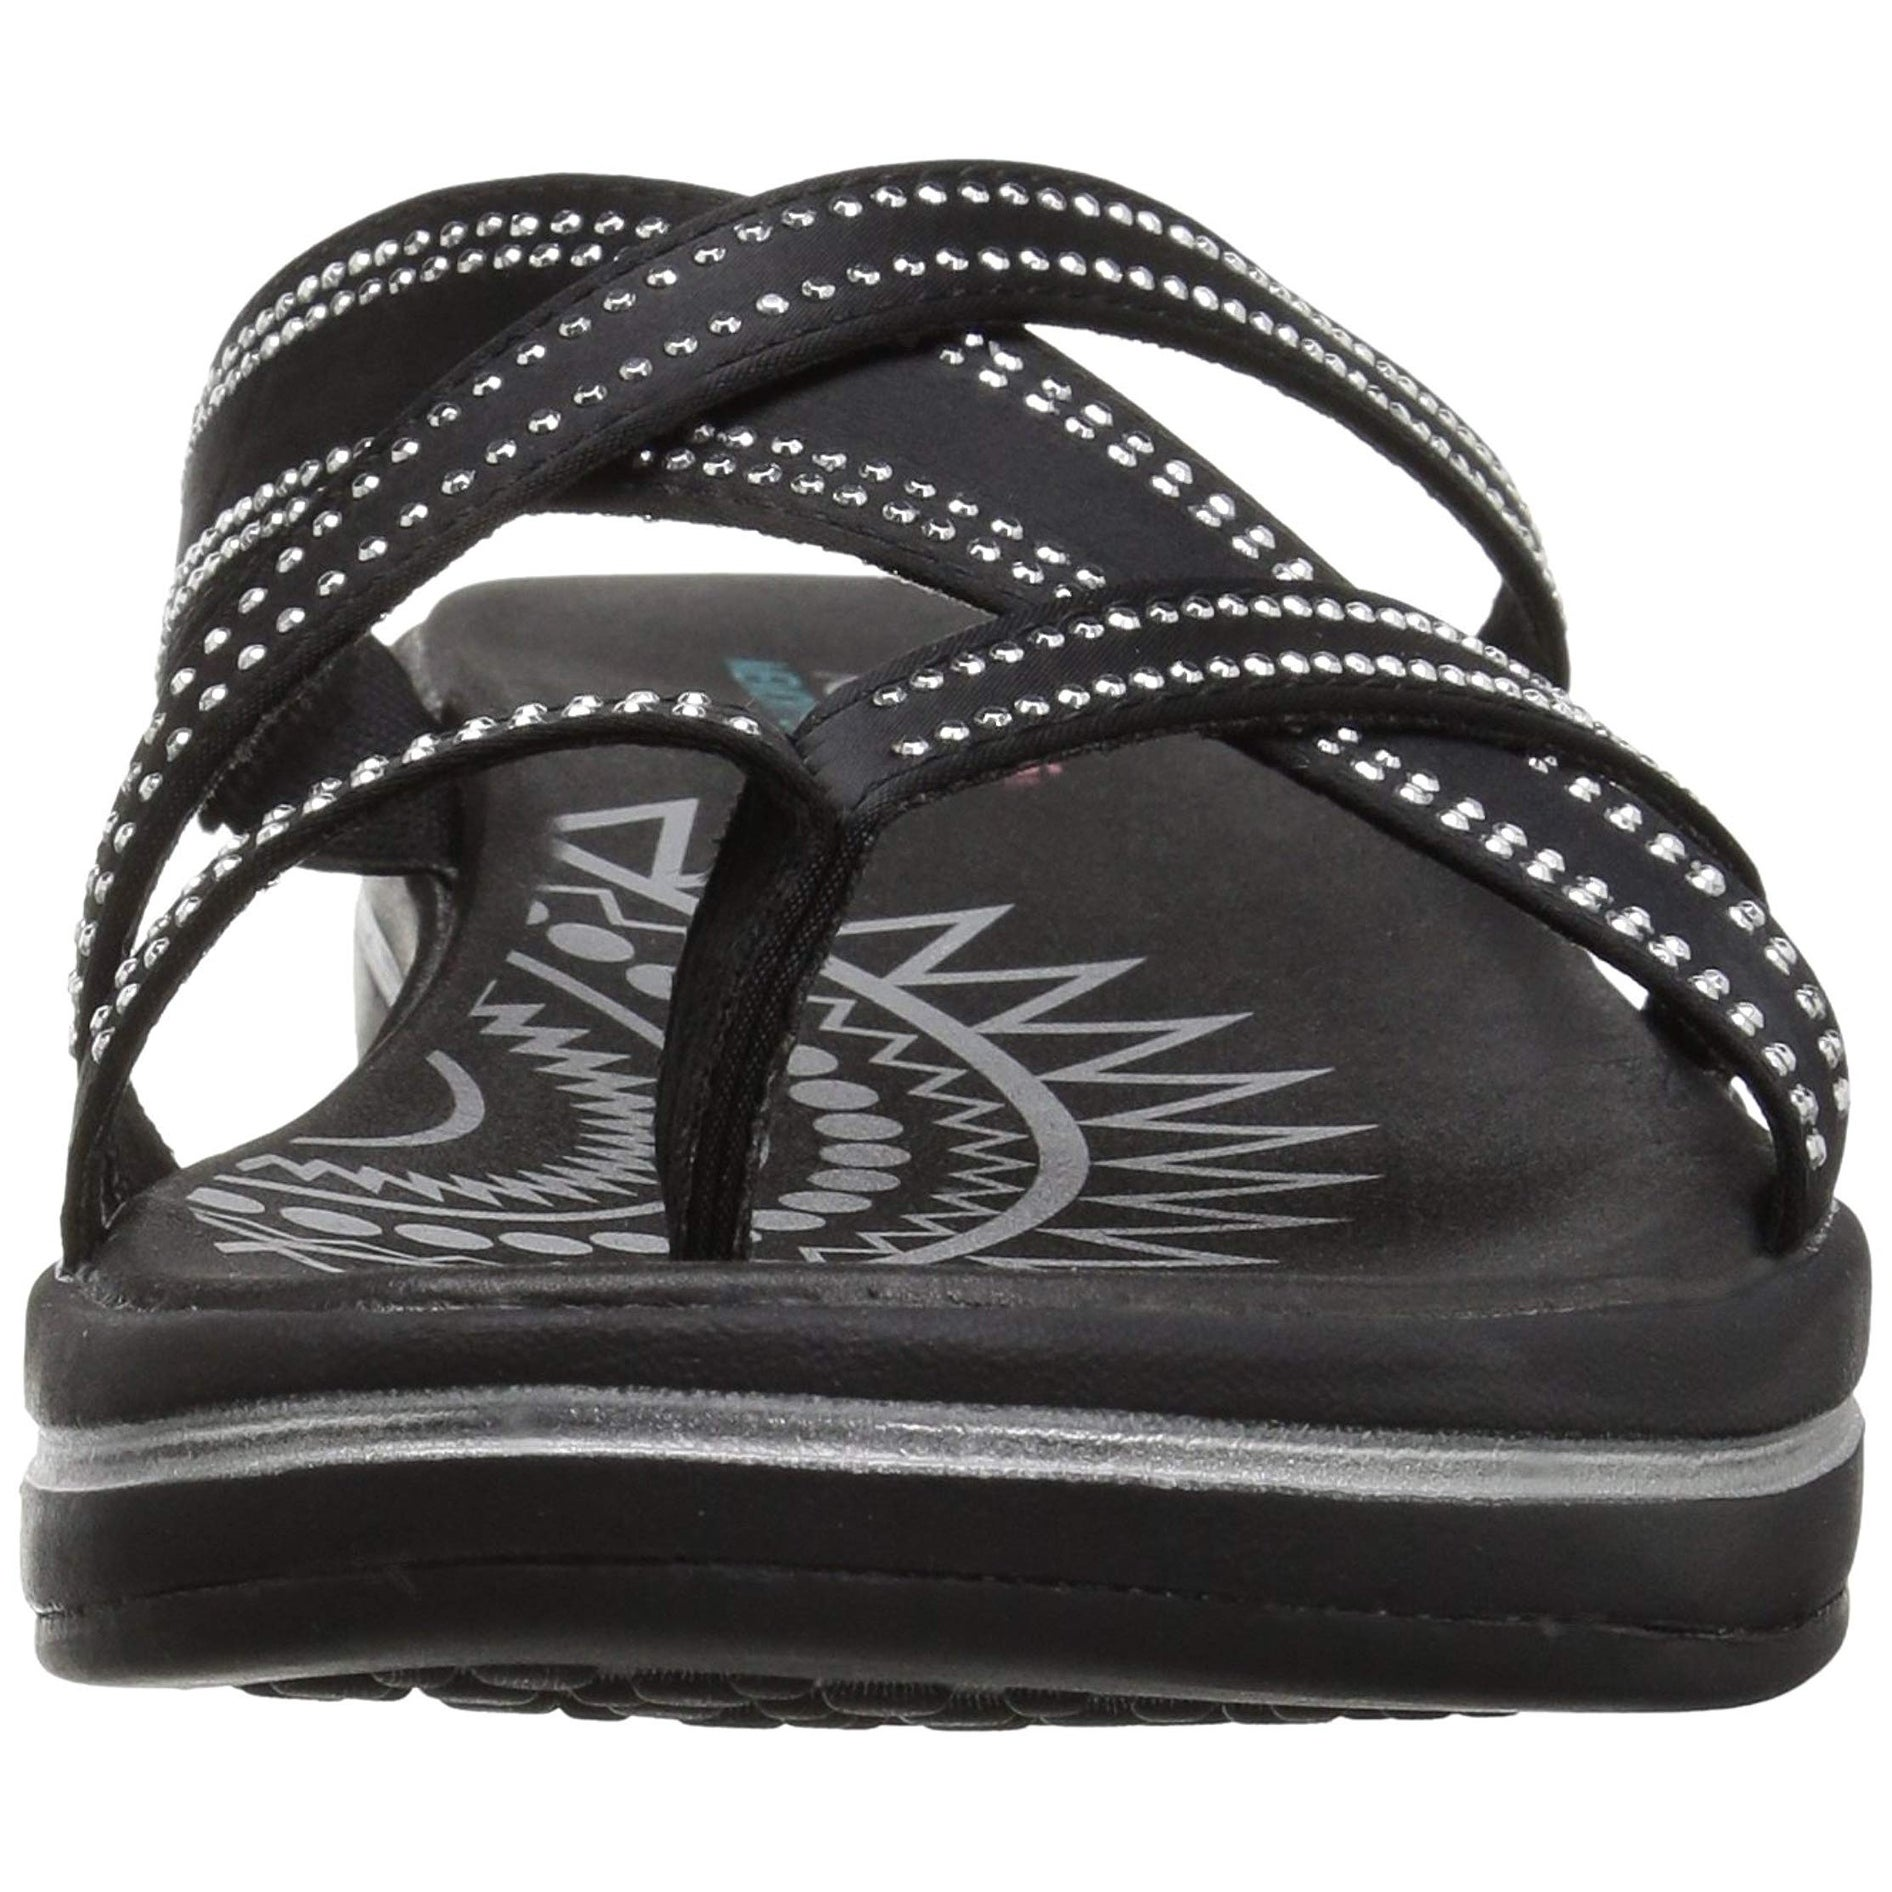 24841f75e3a0d9 Shop Skechers Women Upgrades-Dazzle Time-Rhinestud Multi-Strap Flip Flop